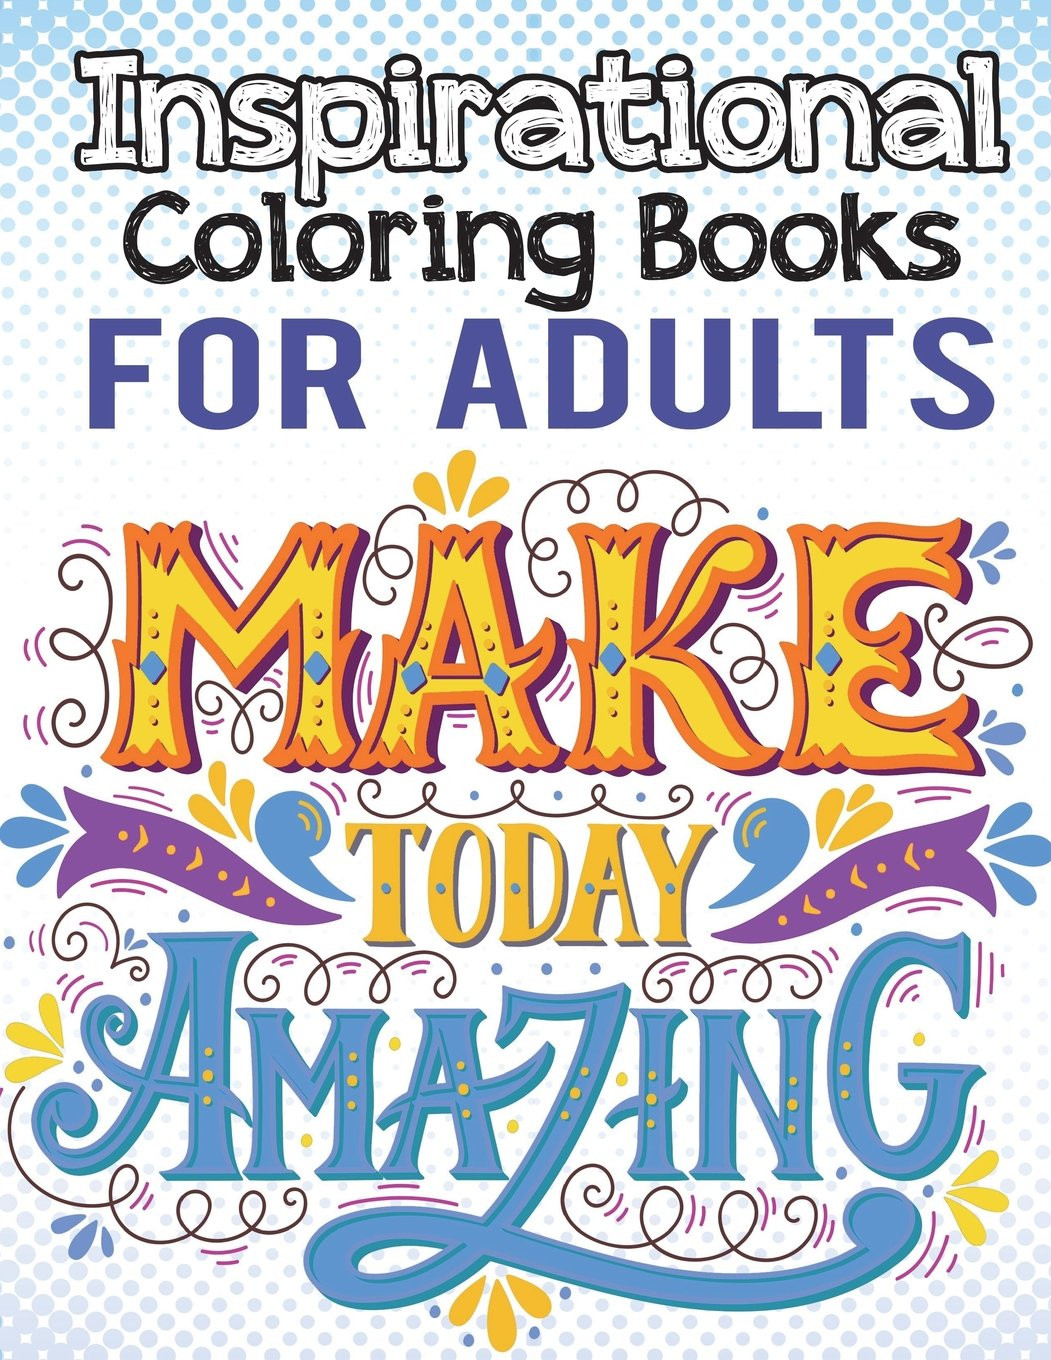 Download Inspirational Coloring Books For Adults: An Inspirational Colouring Book For Everyone: Antistress Coloring Gift for Men & Women, Christian Bible ... & Mindful Meditation Coloring Relaxation Book ebook